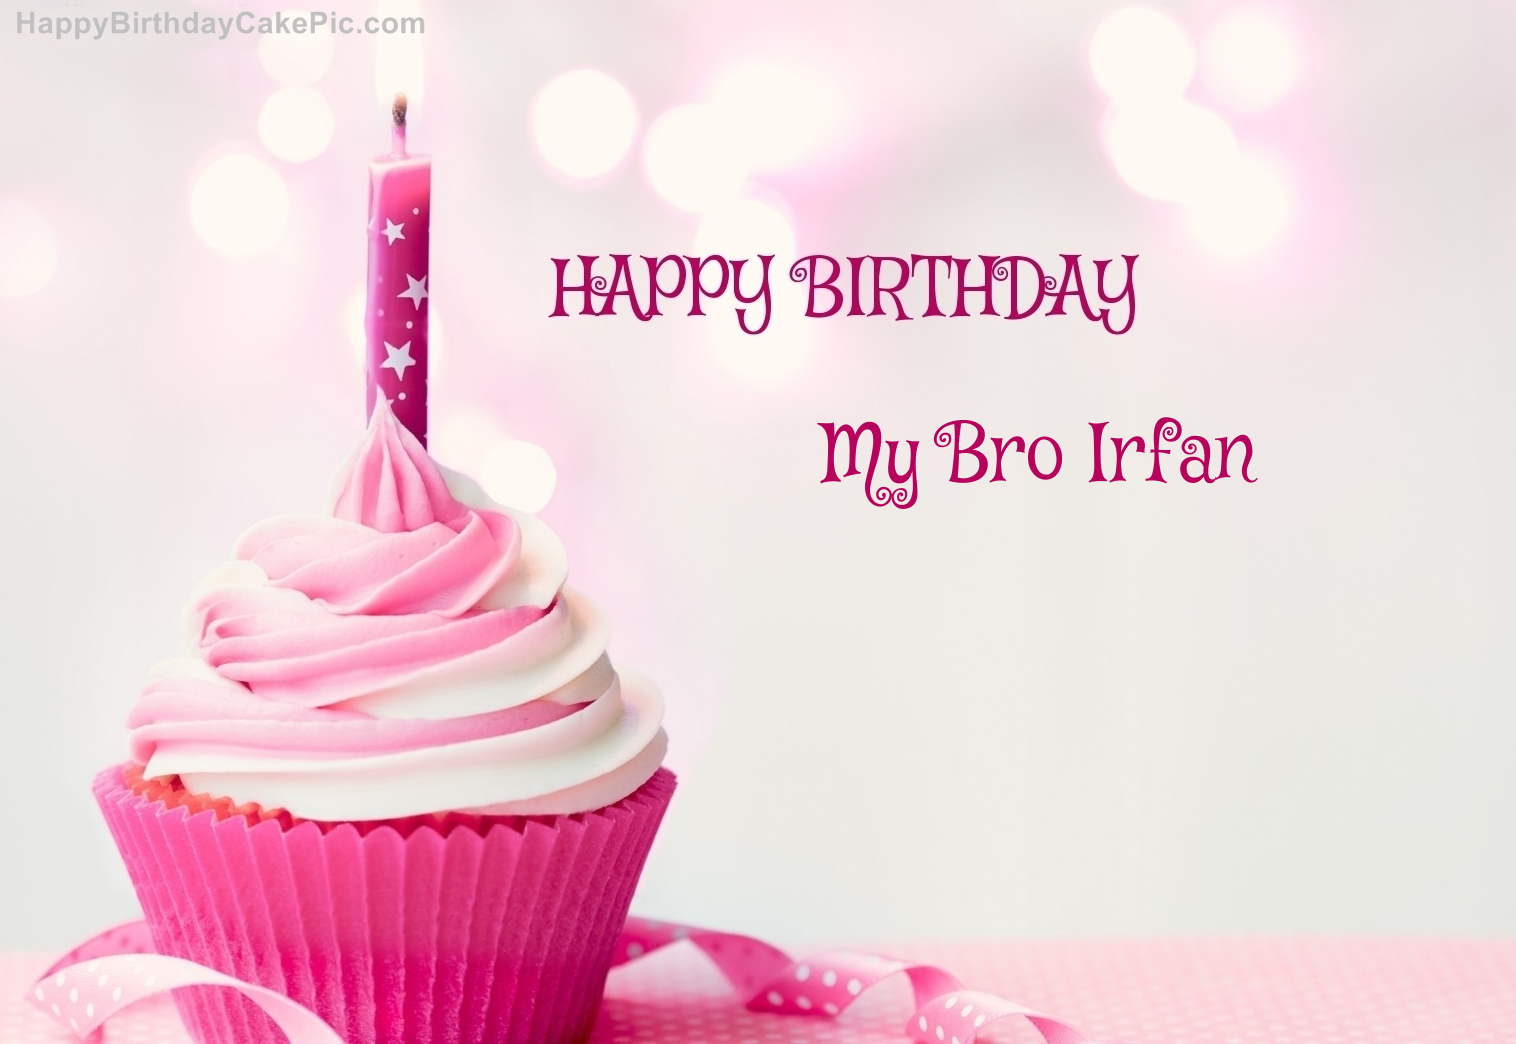 Happy Birthday Cupcake Candle Pink Cake For My Bro Irfan